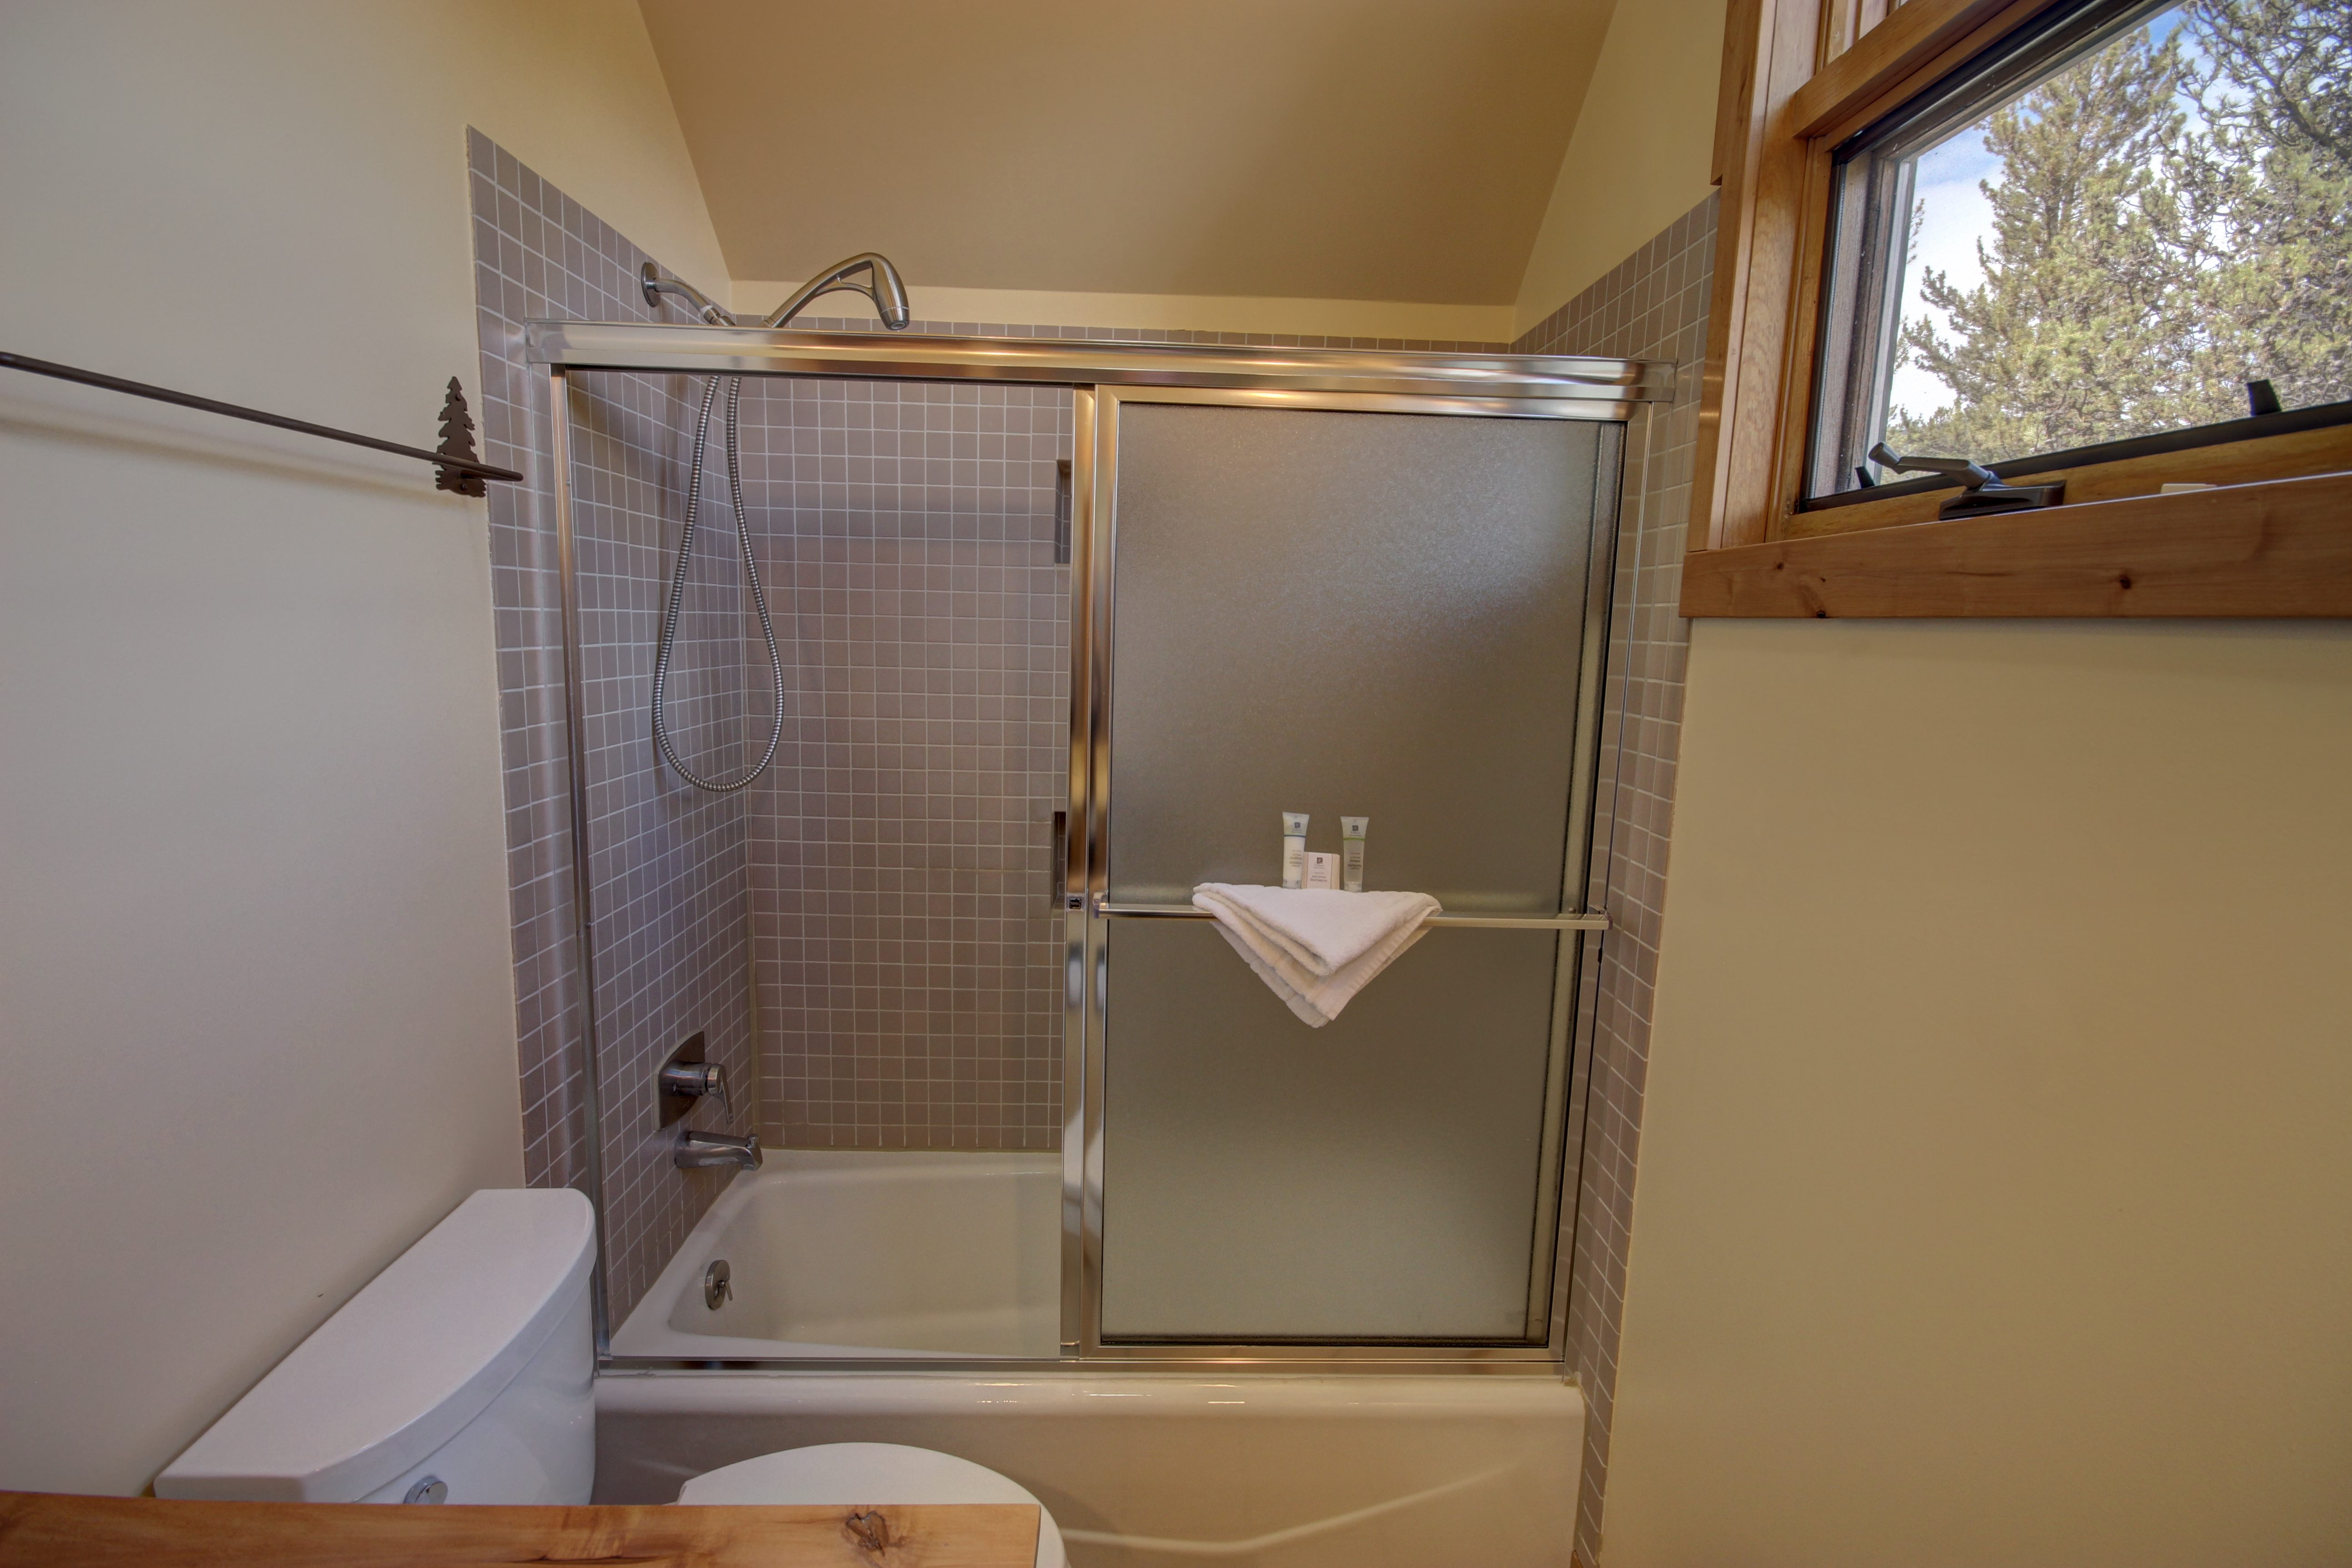 Bathroom with relaxing bath and shower